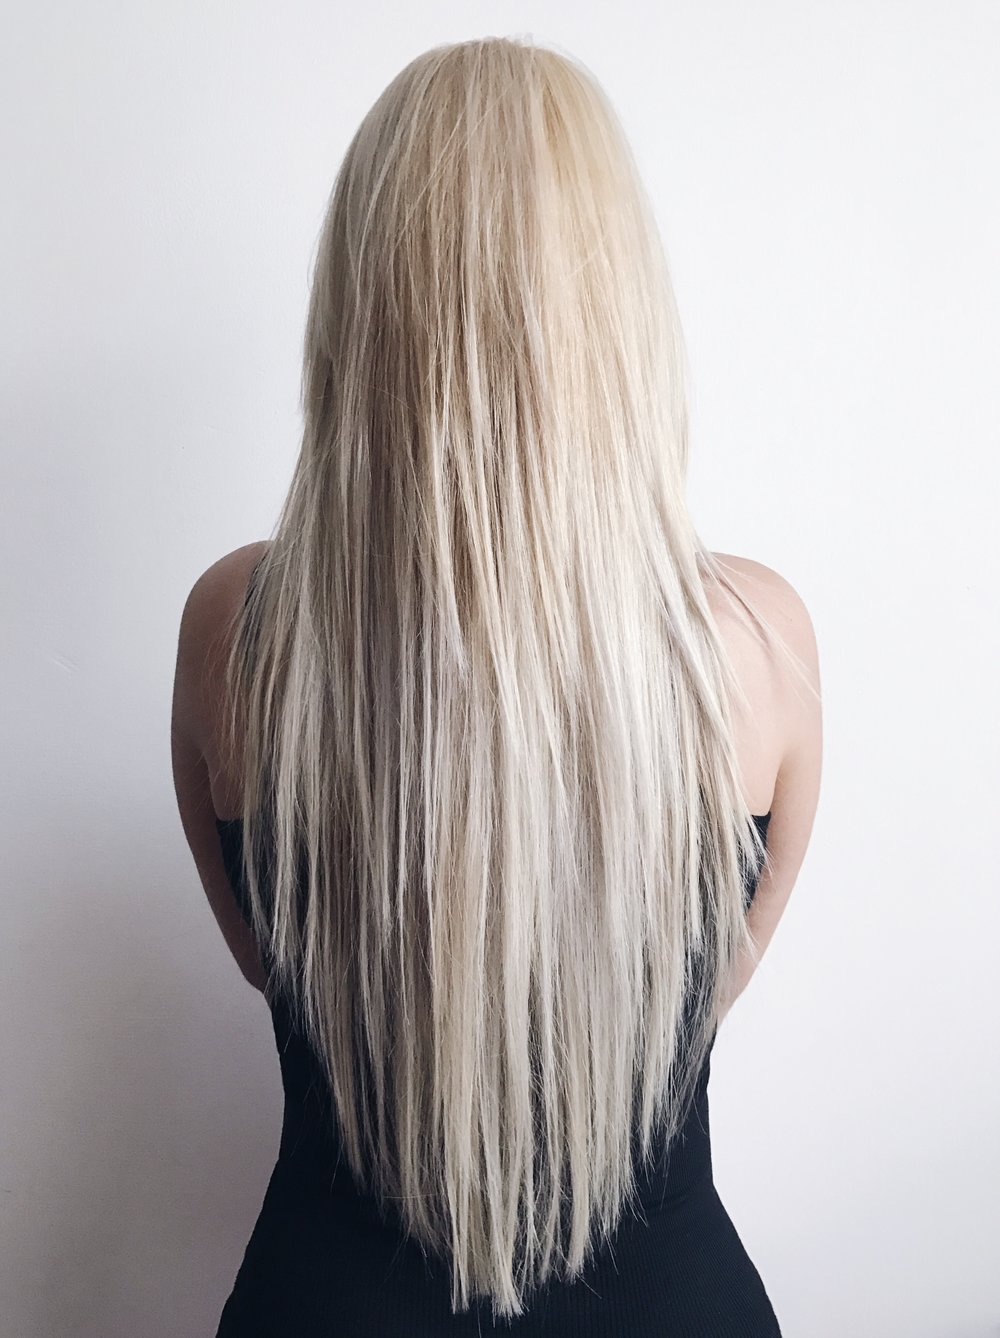 hair hairstyle blonde haircut hairdye dye color gold golden platinum girl nicole blog blogger fashion style trends trend autumn fall season arockchicklife